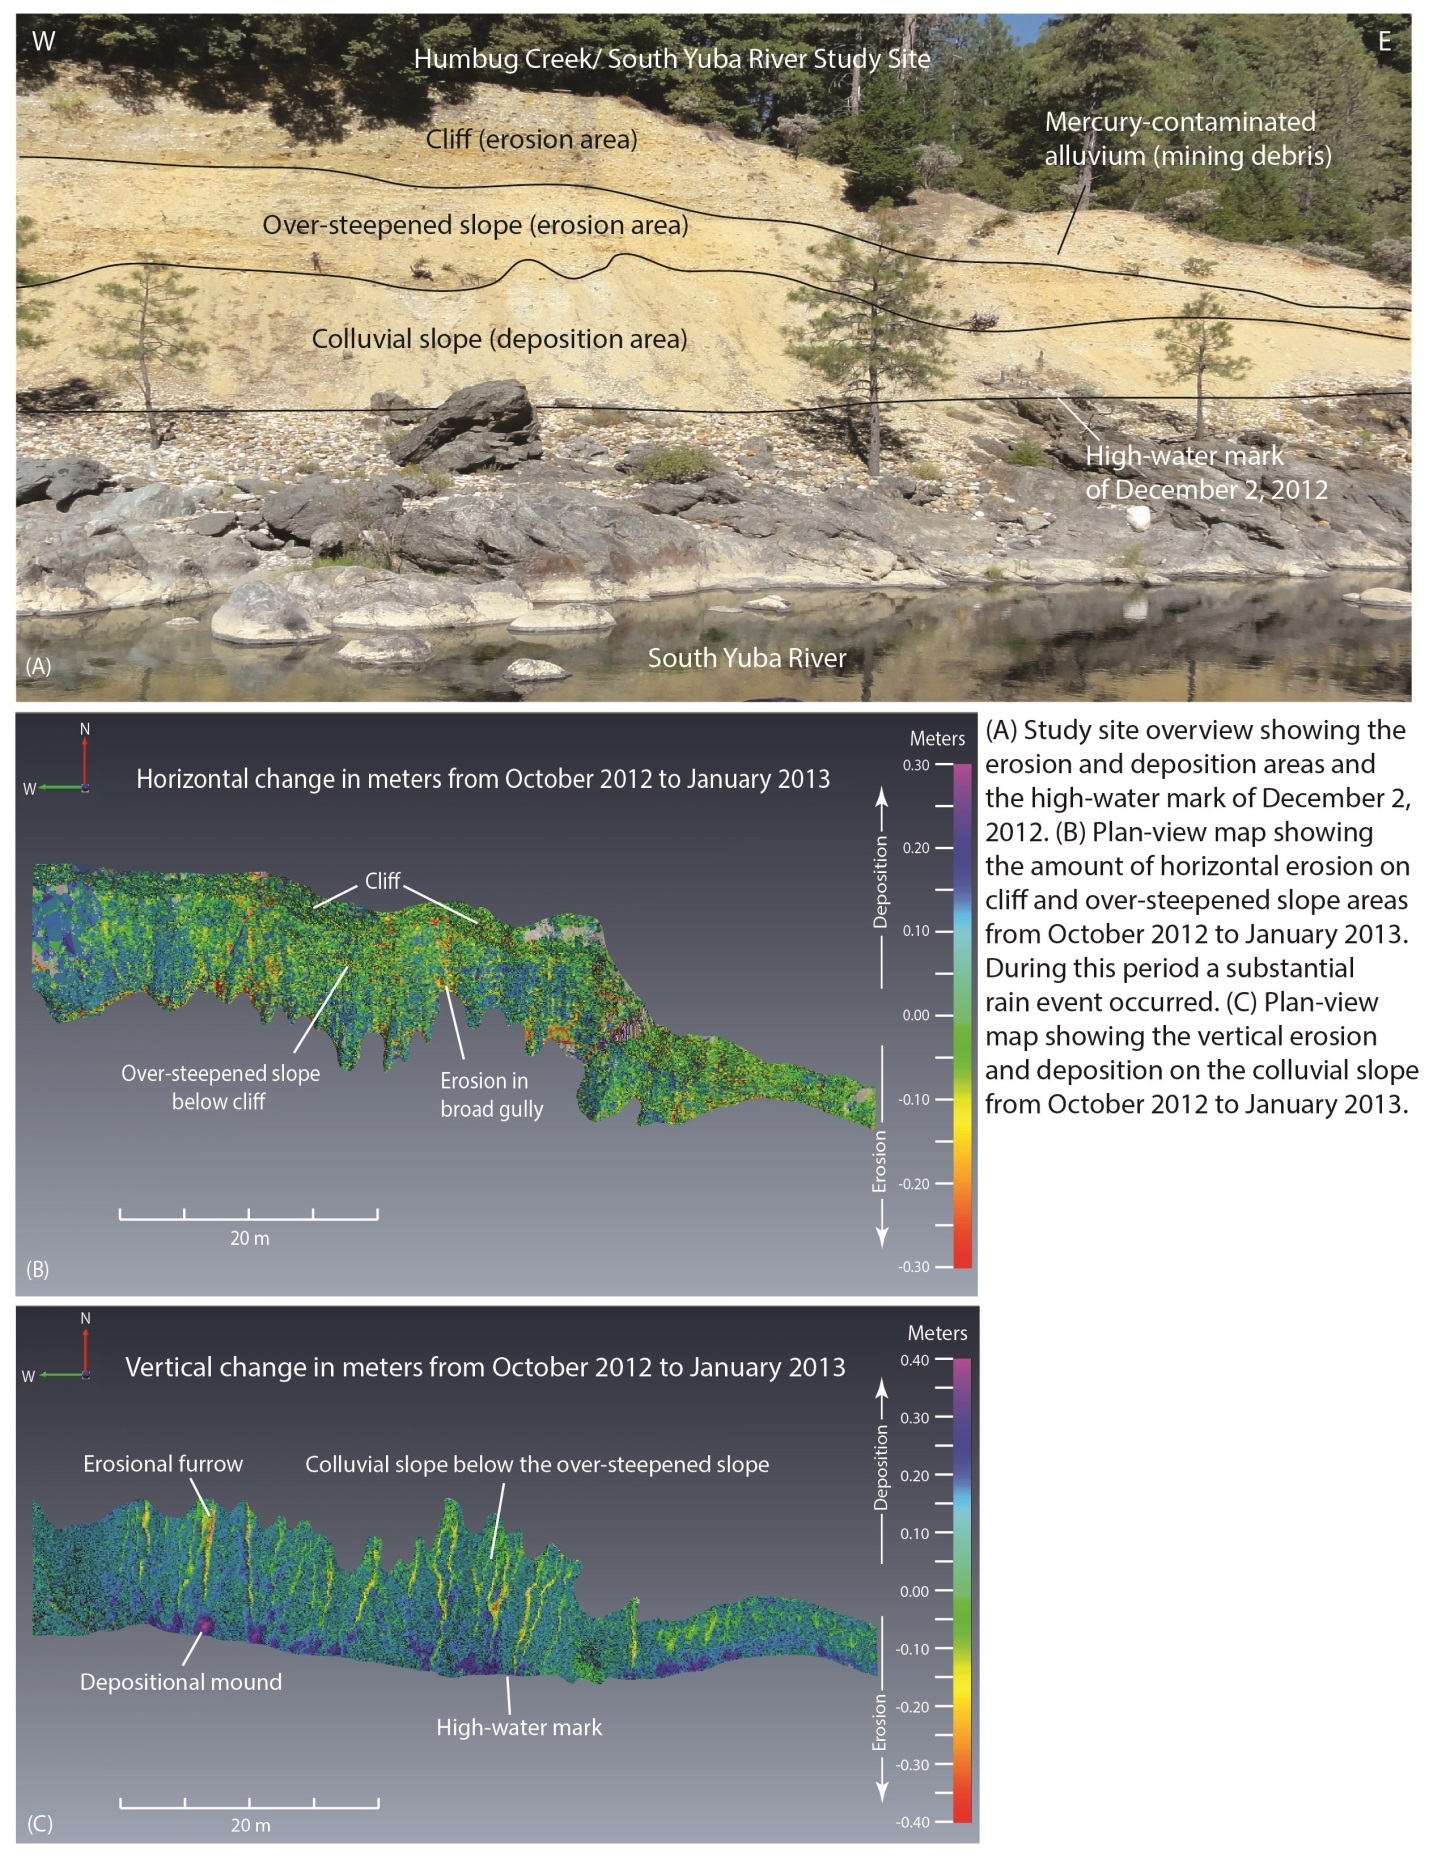 Quantifying Erosion of Mercury-Contaminated Gold Mining Debris at South Yuba River, California